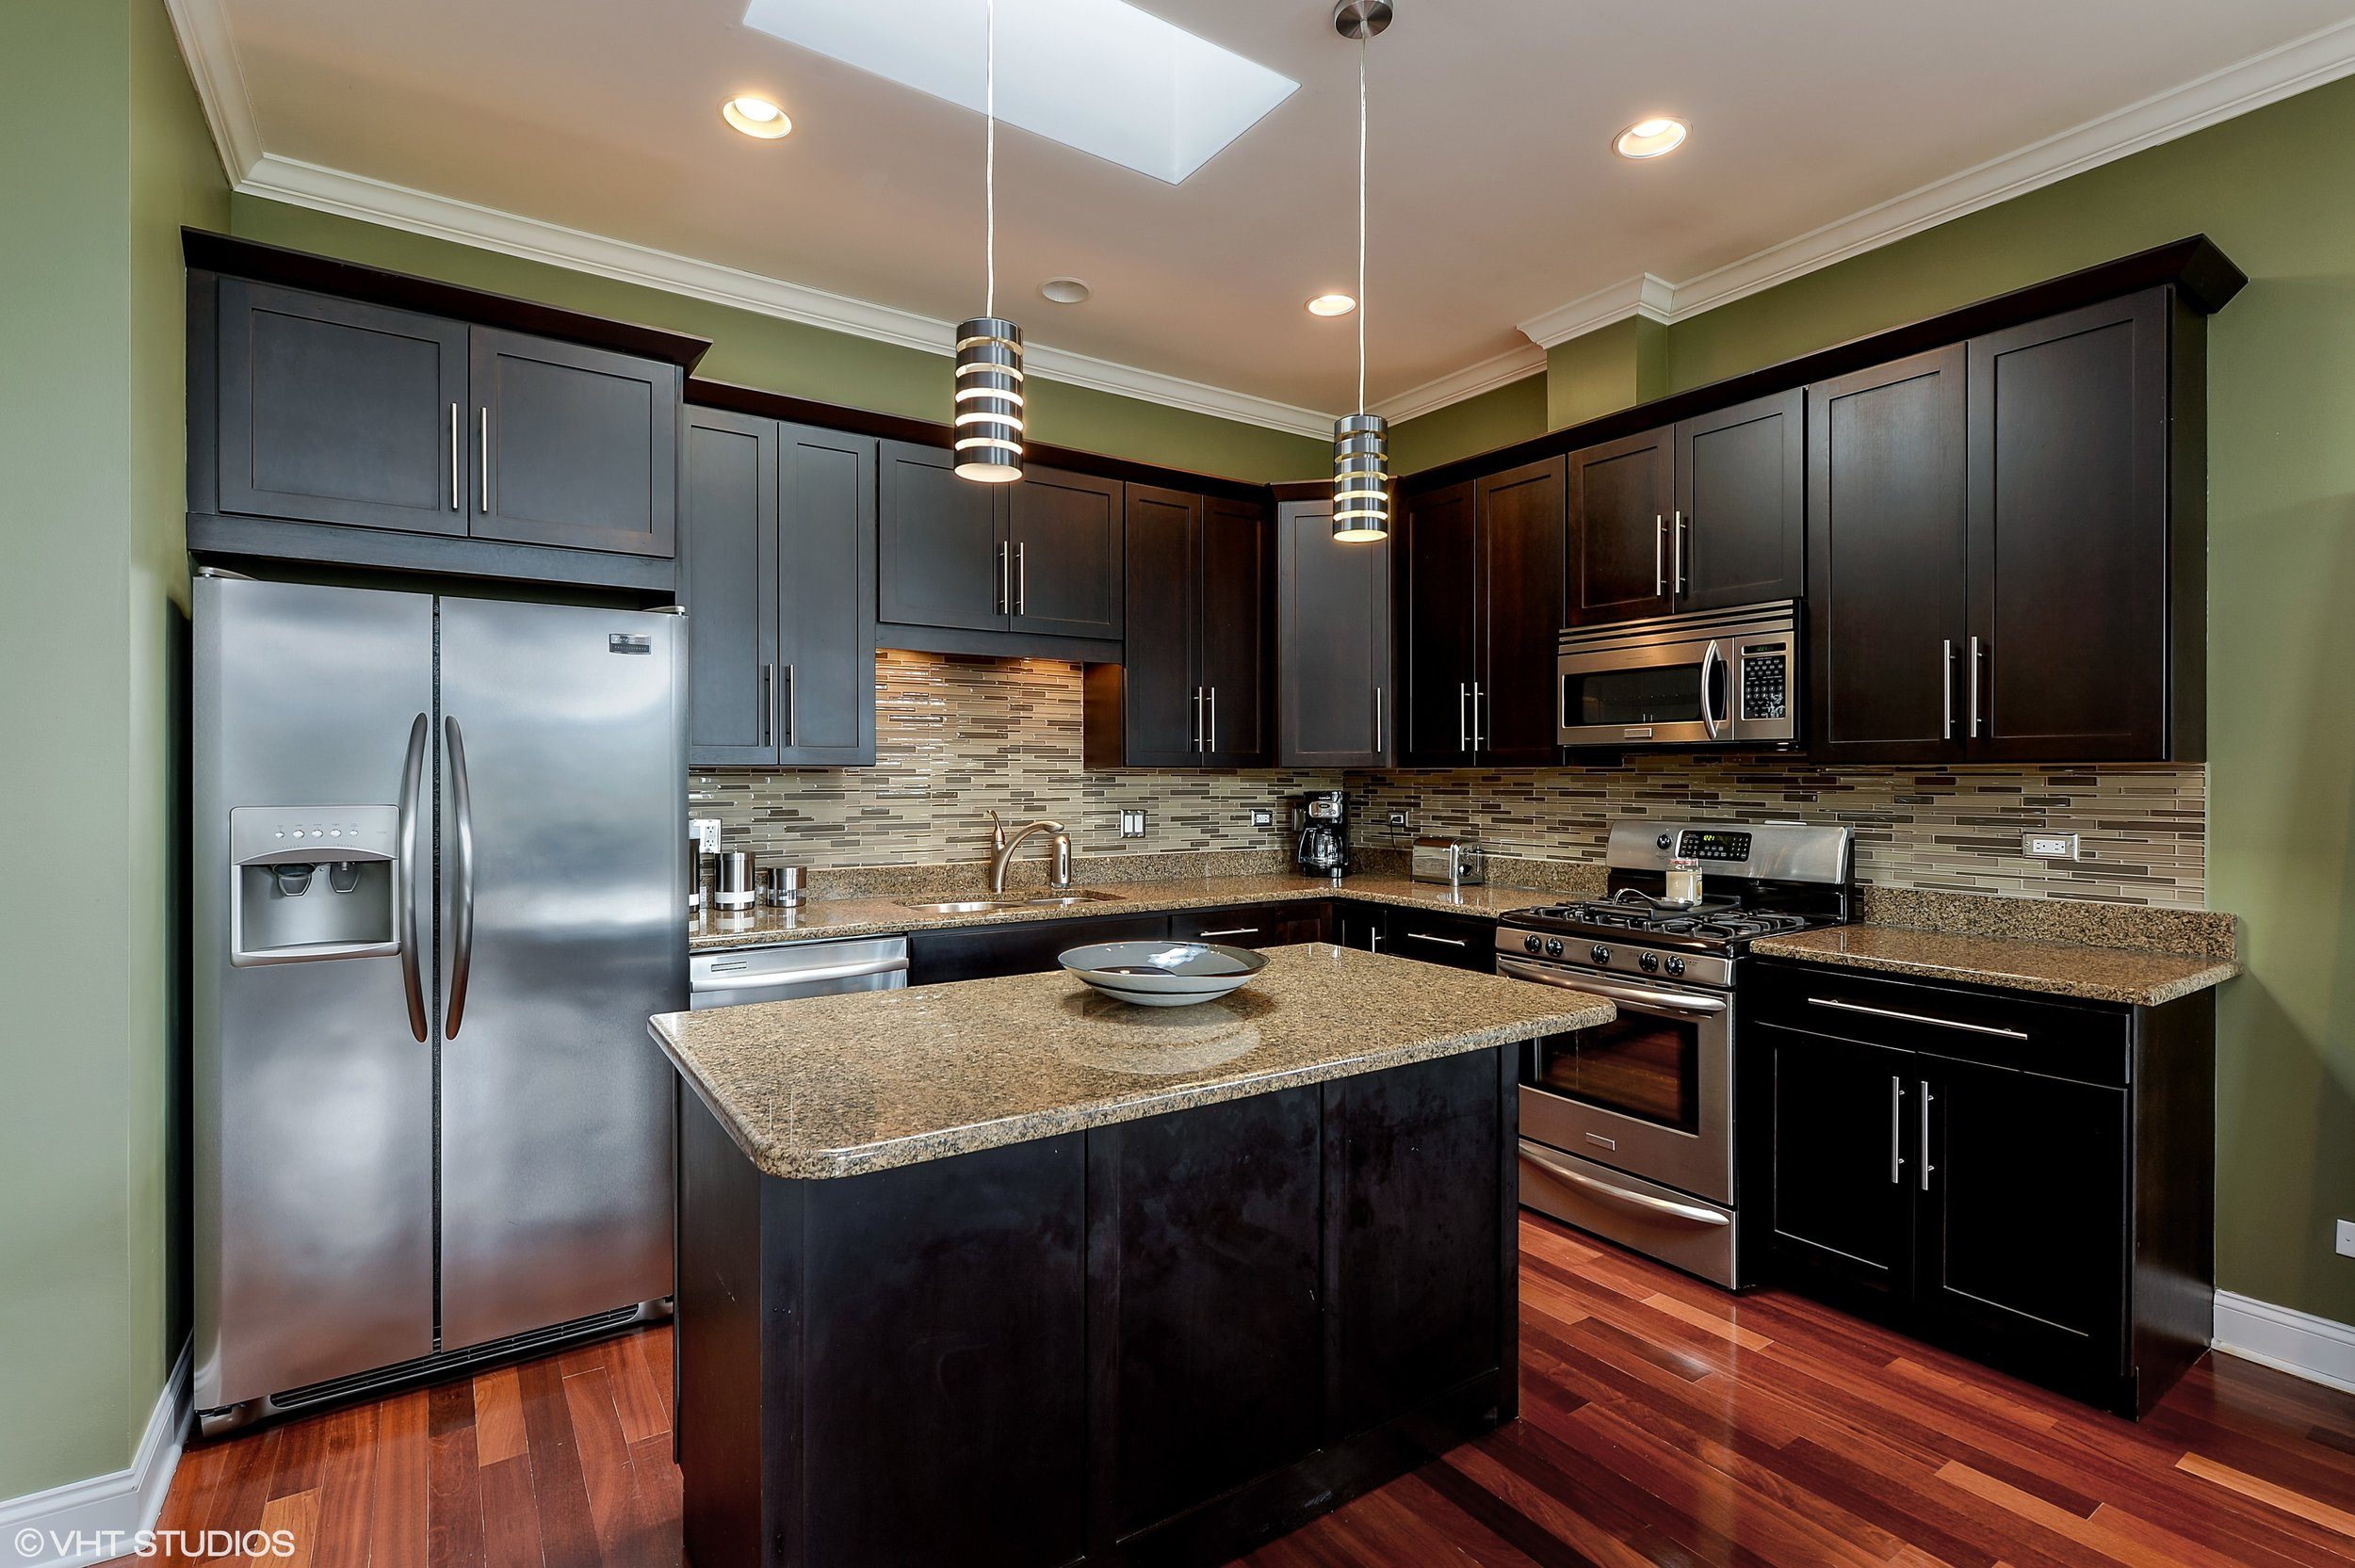 04_2641NorthAshlandAve_3S_5_Kitchen_HiRes.jpg